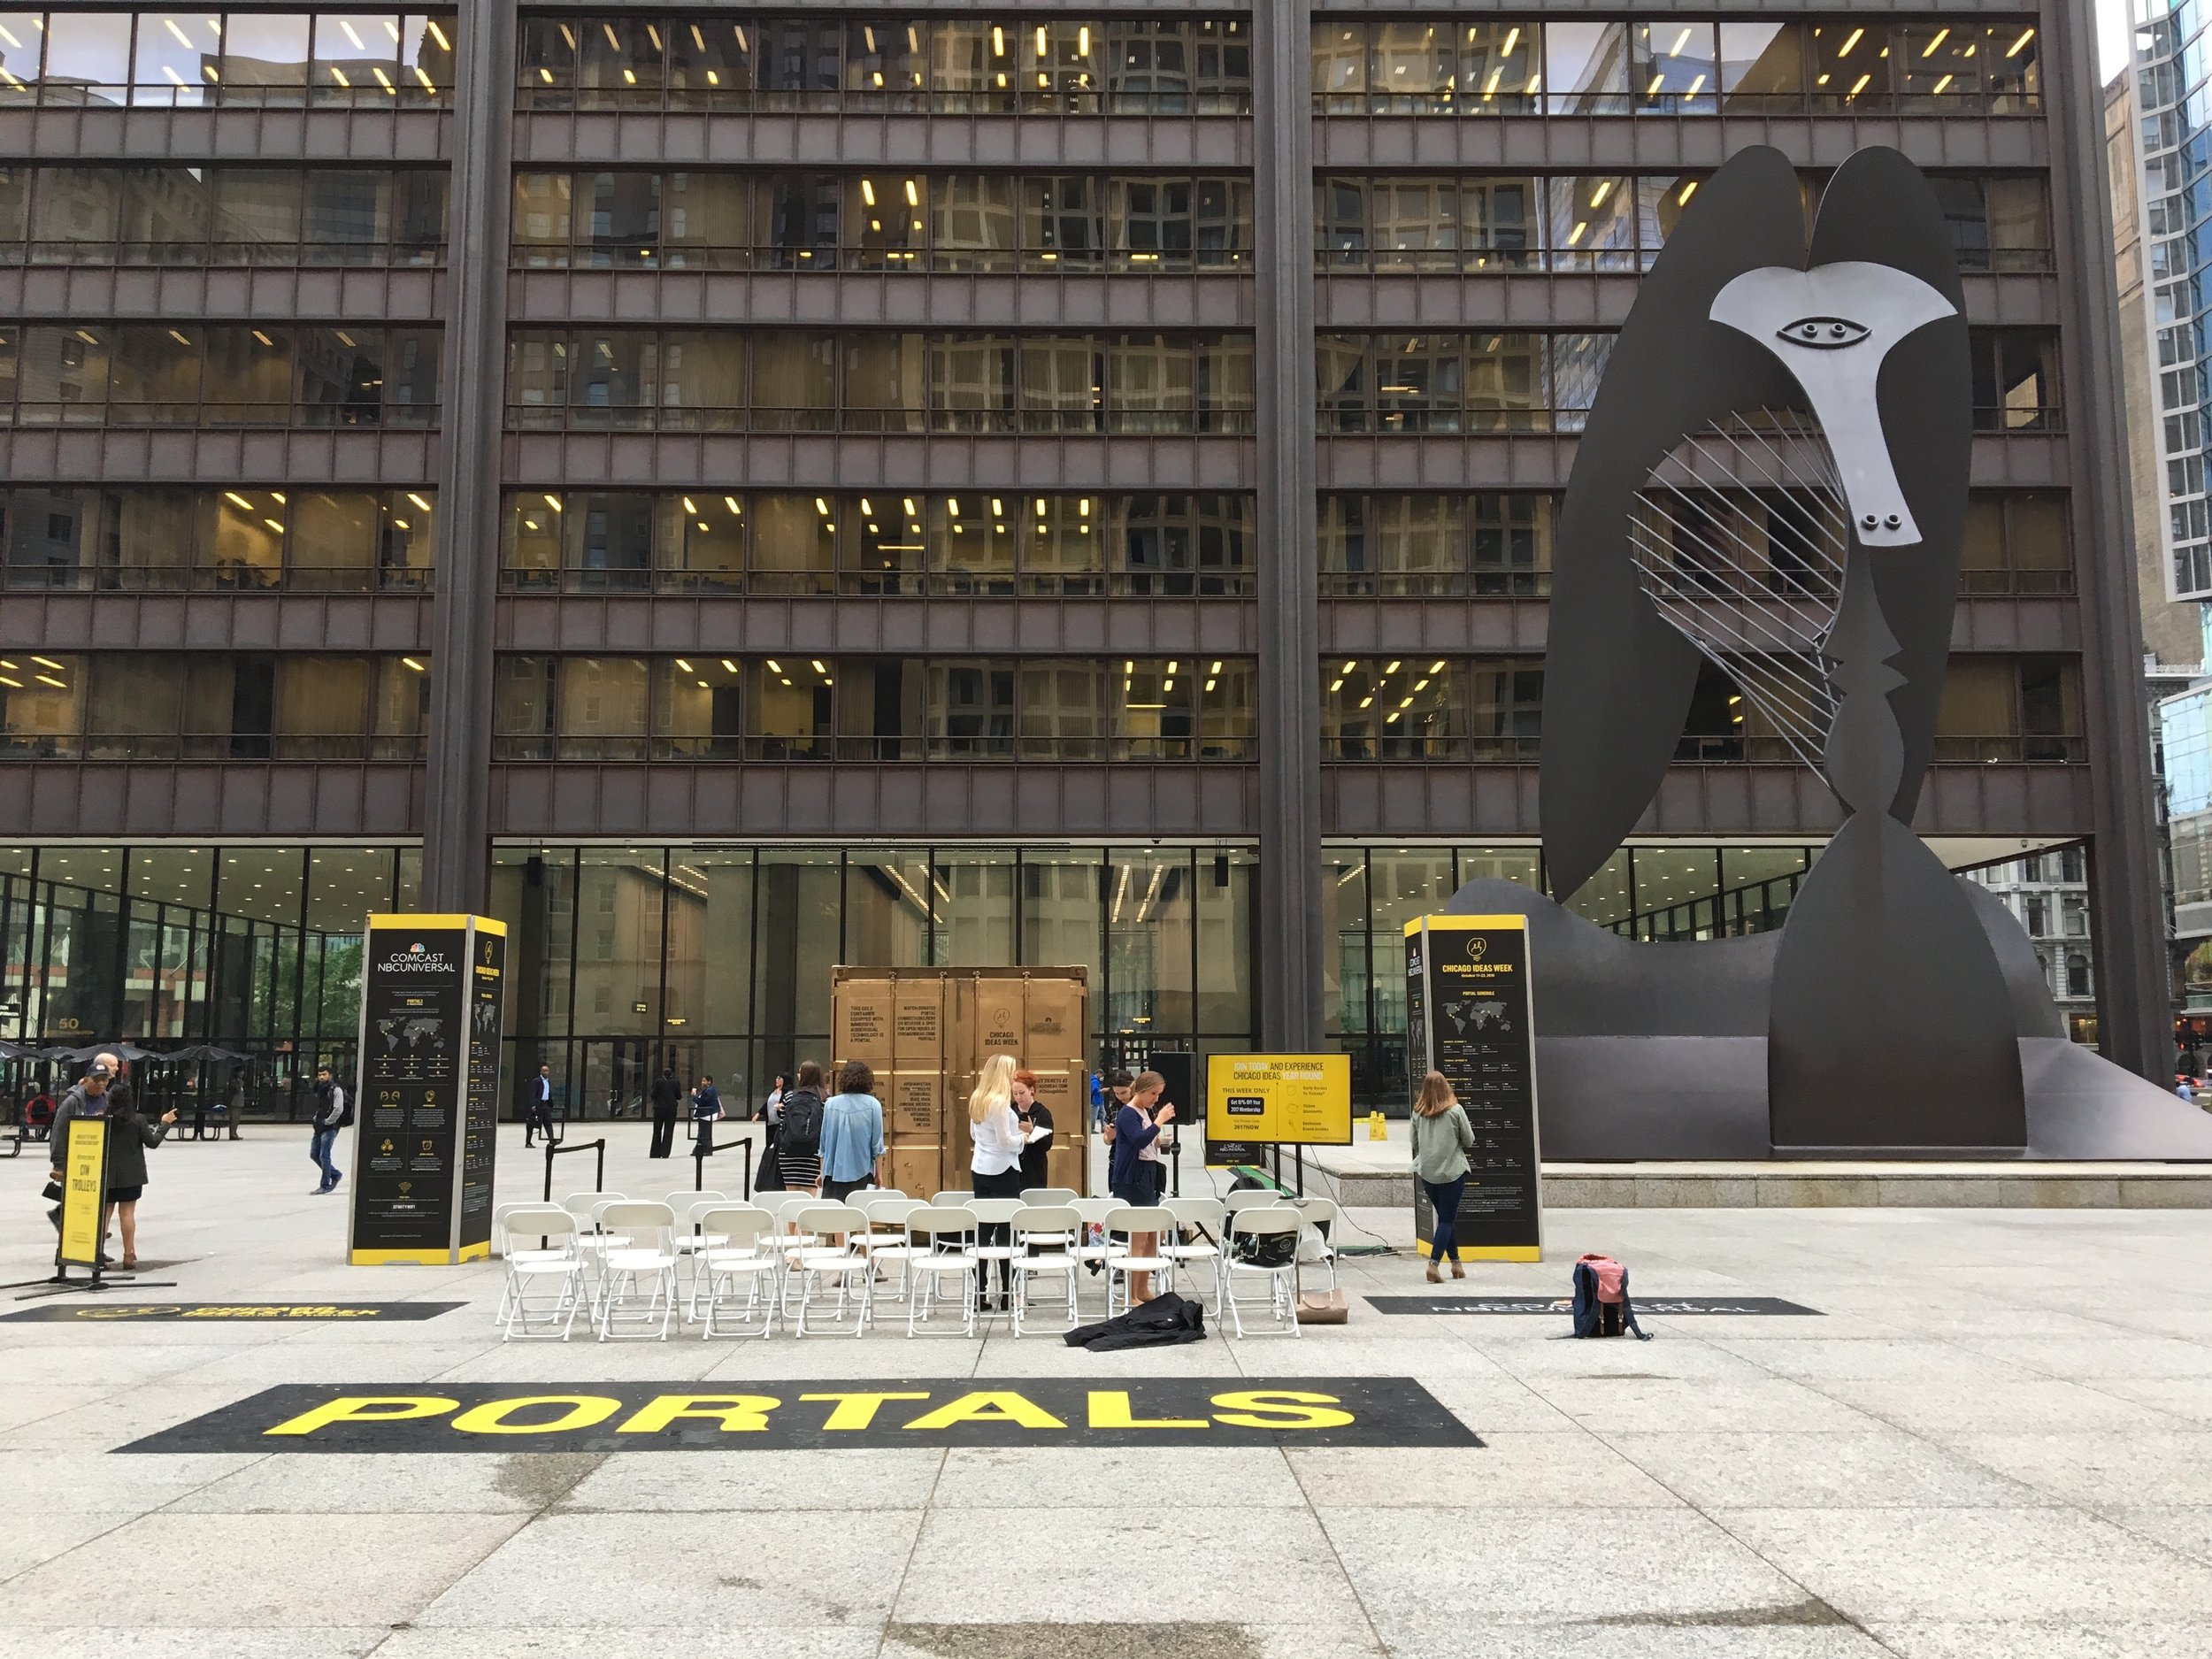 Our Portal in Daley Plaza right underneath a massive untitled sculpture by Pablo Picasso. It is often called The Picasso or  Chicago Picasso .